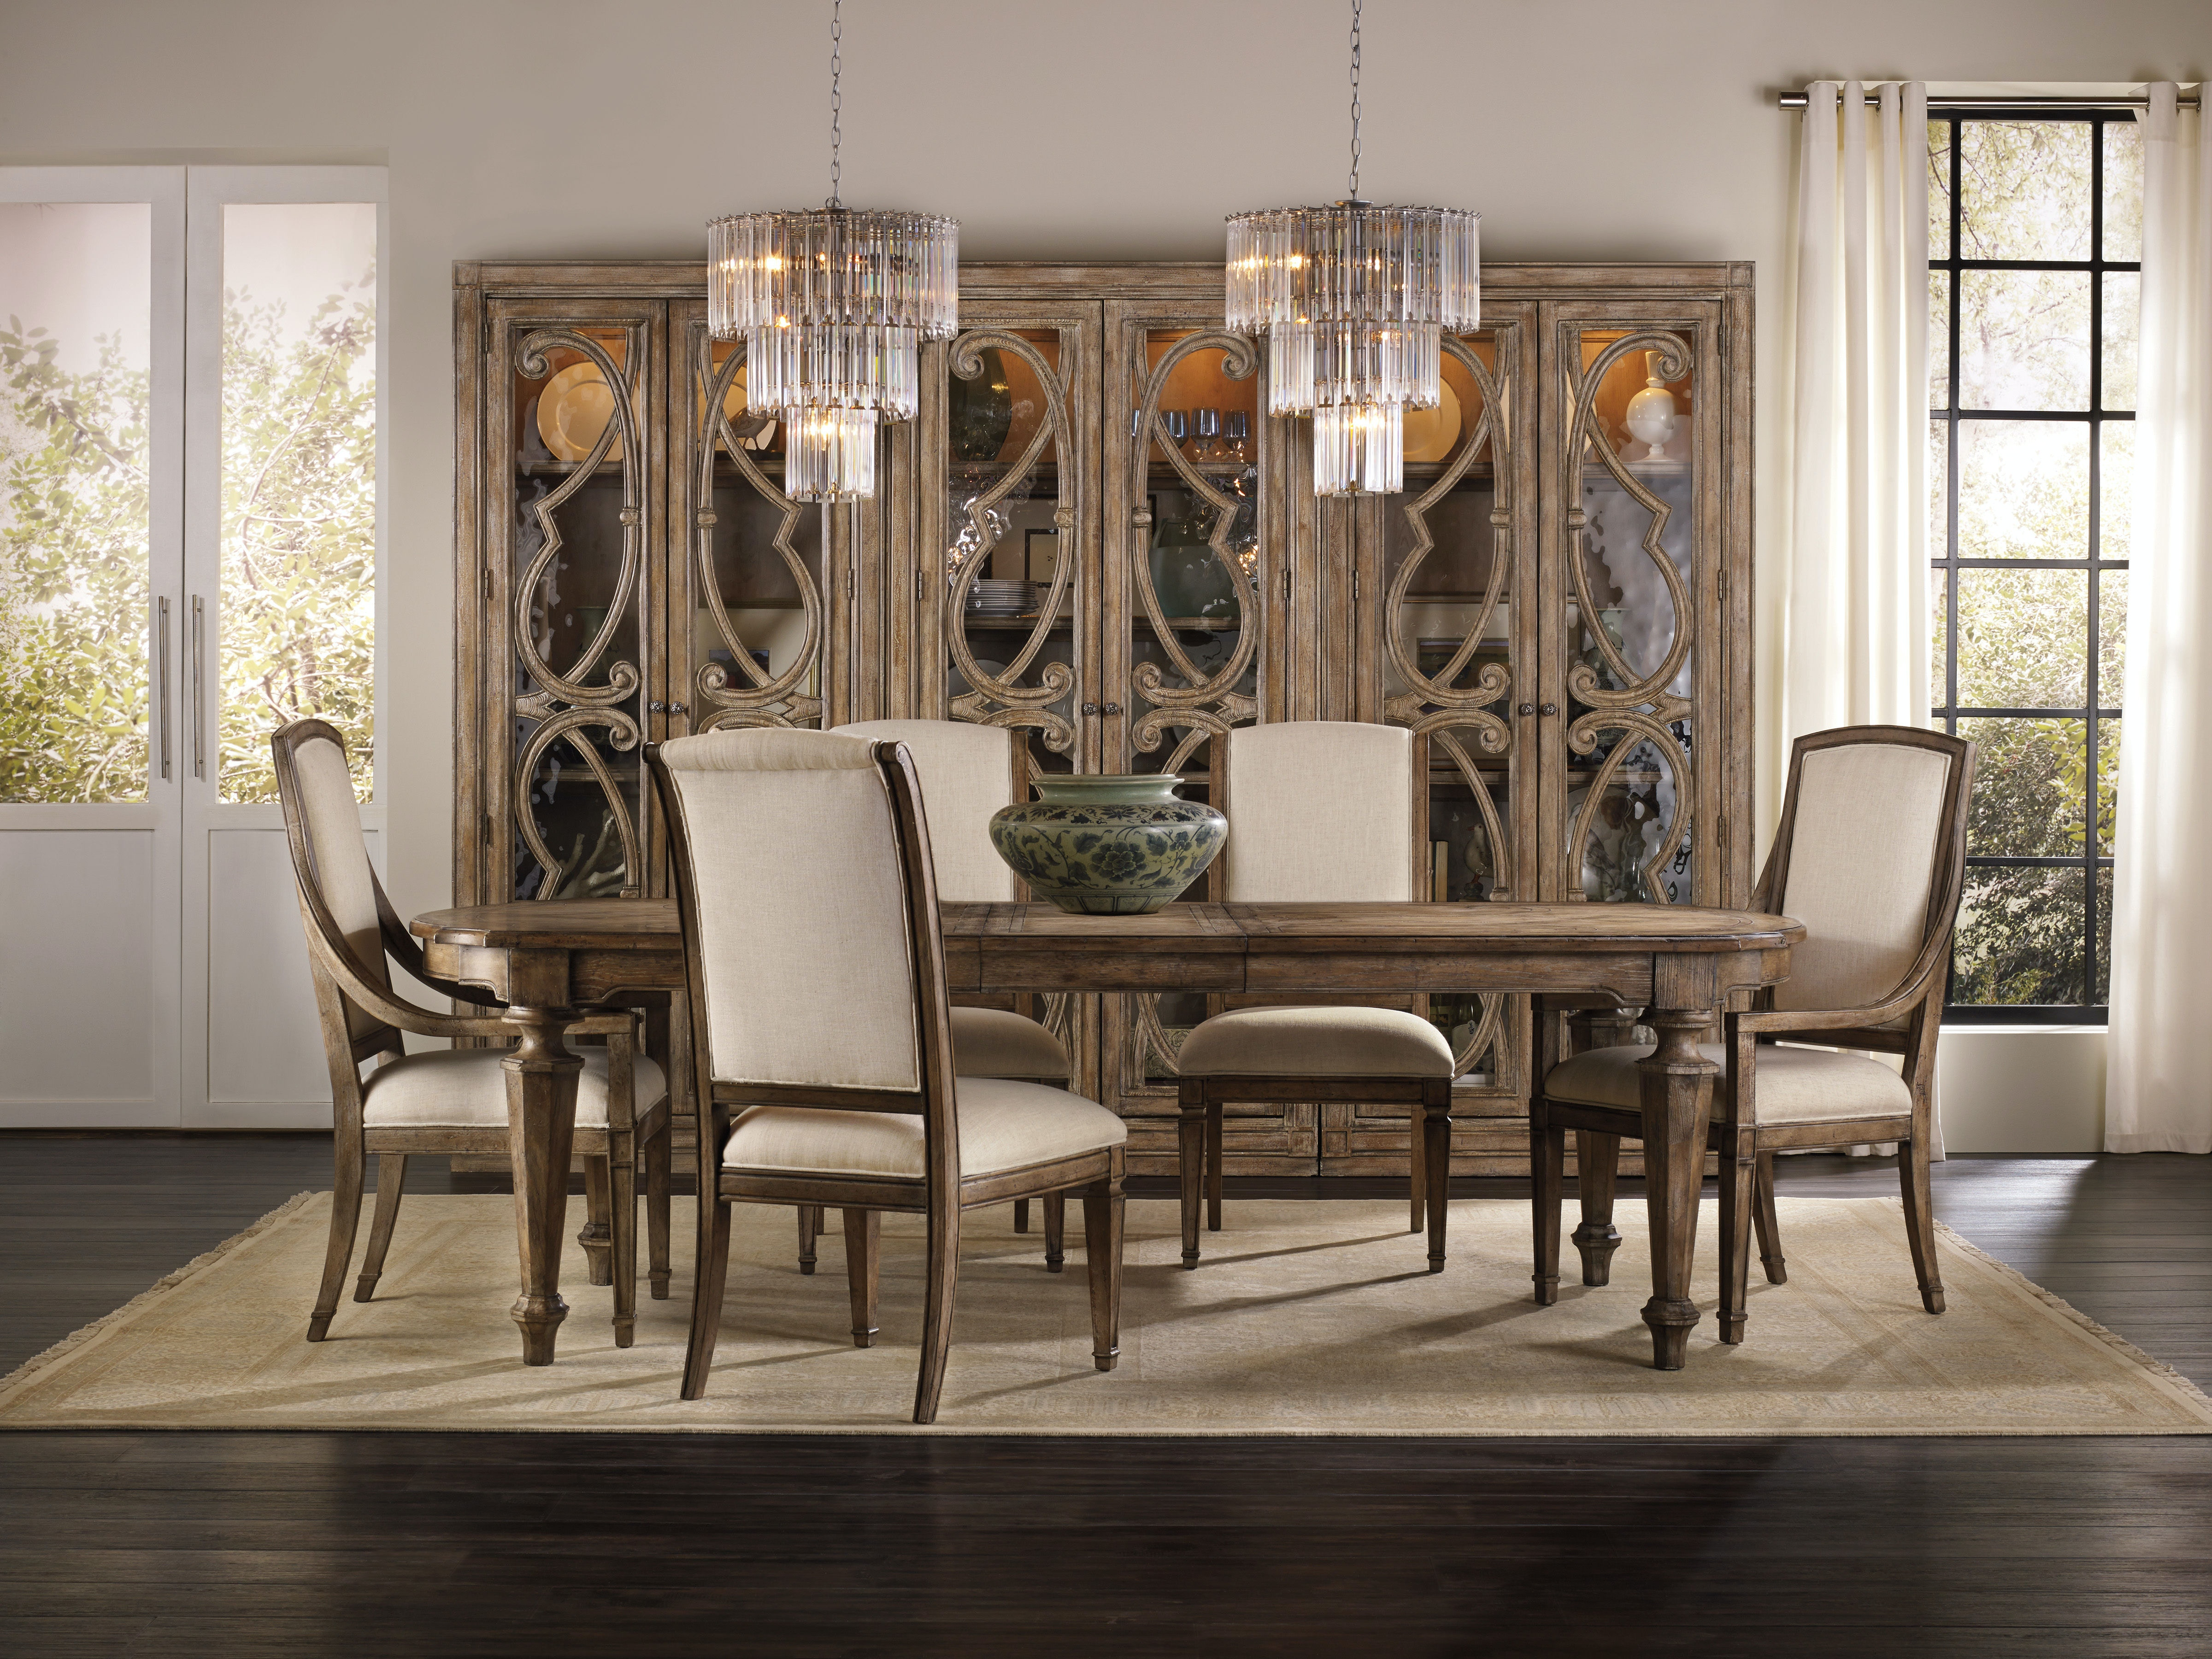 Hooker Furniture Solana Rectangle Dining Table w 2 18in Leaves 5291 75200Hooker Furniture Dining Room Solana Rectangle Dining Table w 2  . Rectangular Dining Tables With Leaves. Home Design Ideas